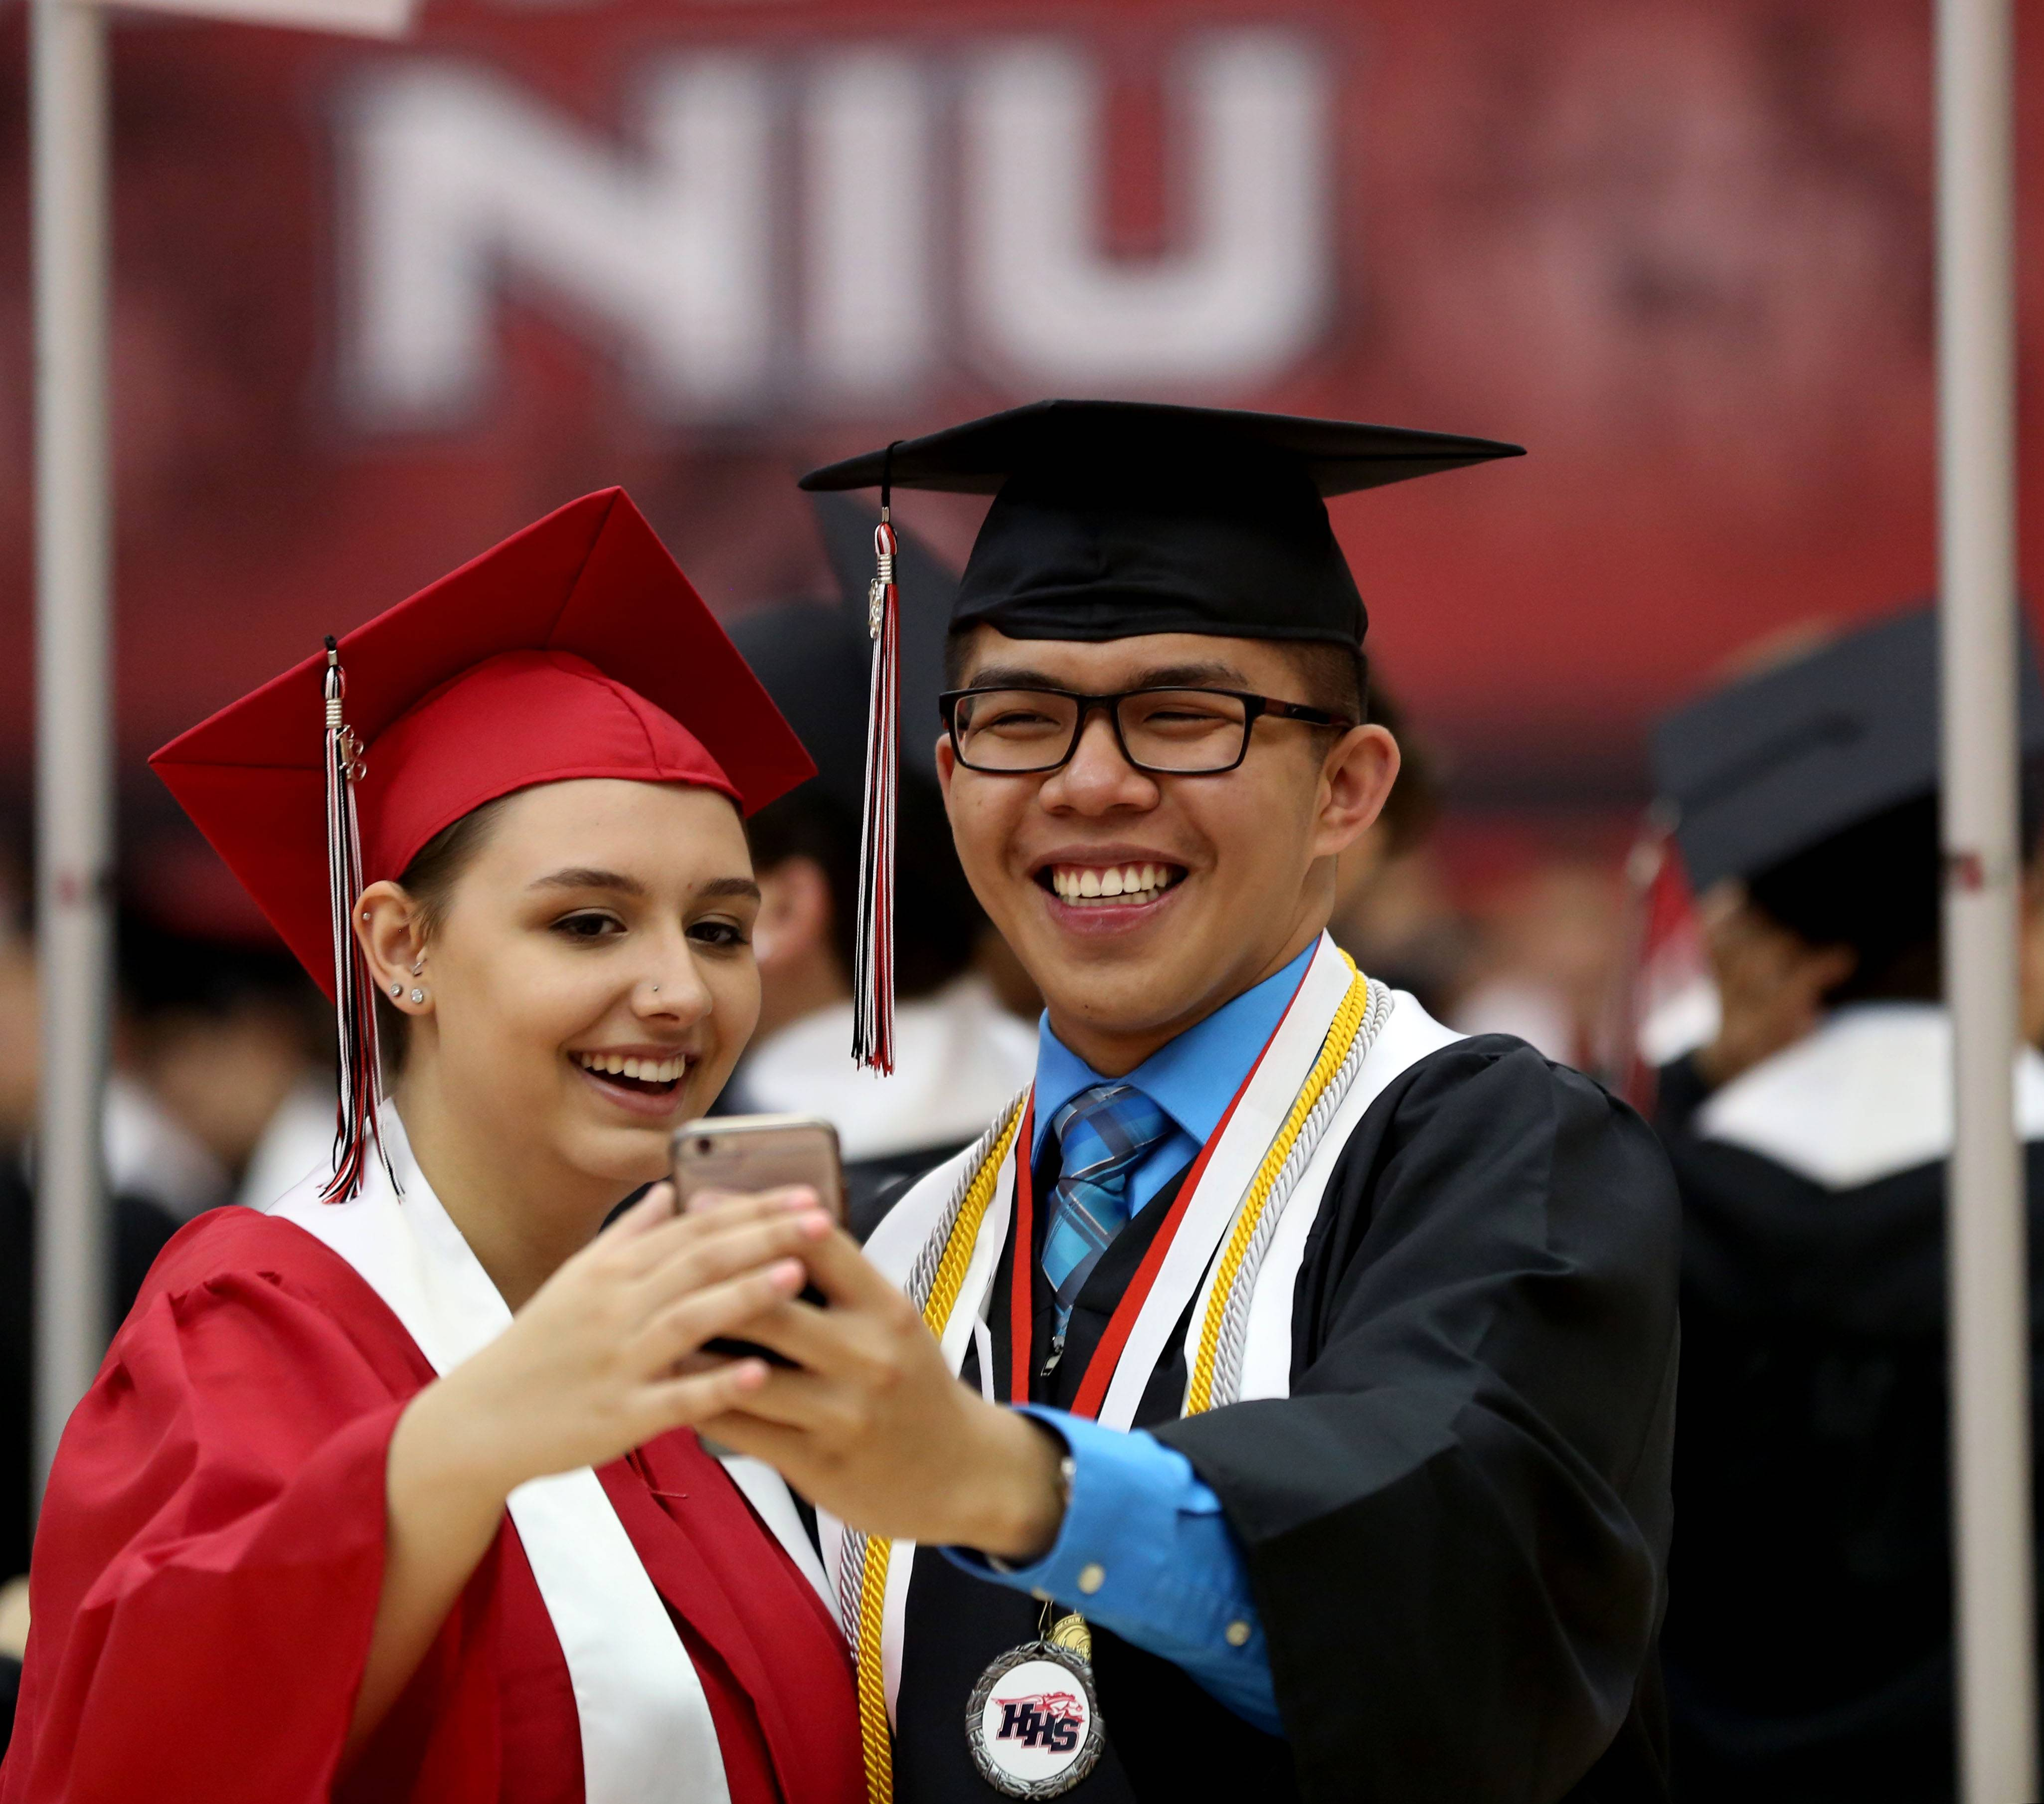 Claire Lenihan, left, of Huntley takes a selfie with classmate Xavier Lee of Lake in the Hills before they line up to march at the commencement program for Huntley High School at the Convocation Center on the campus off Northern Illinois University in DeKalb on Saturday, May 26.